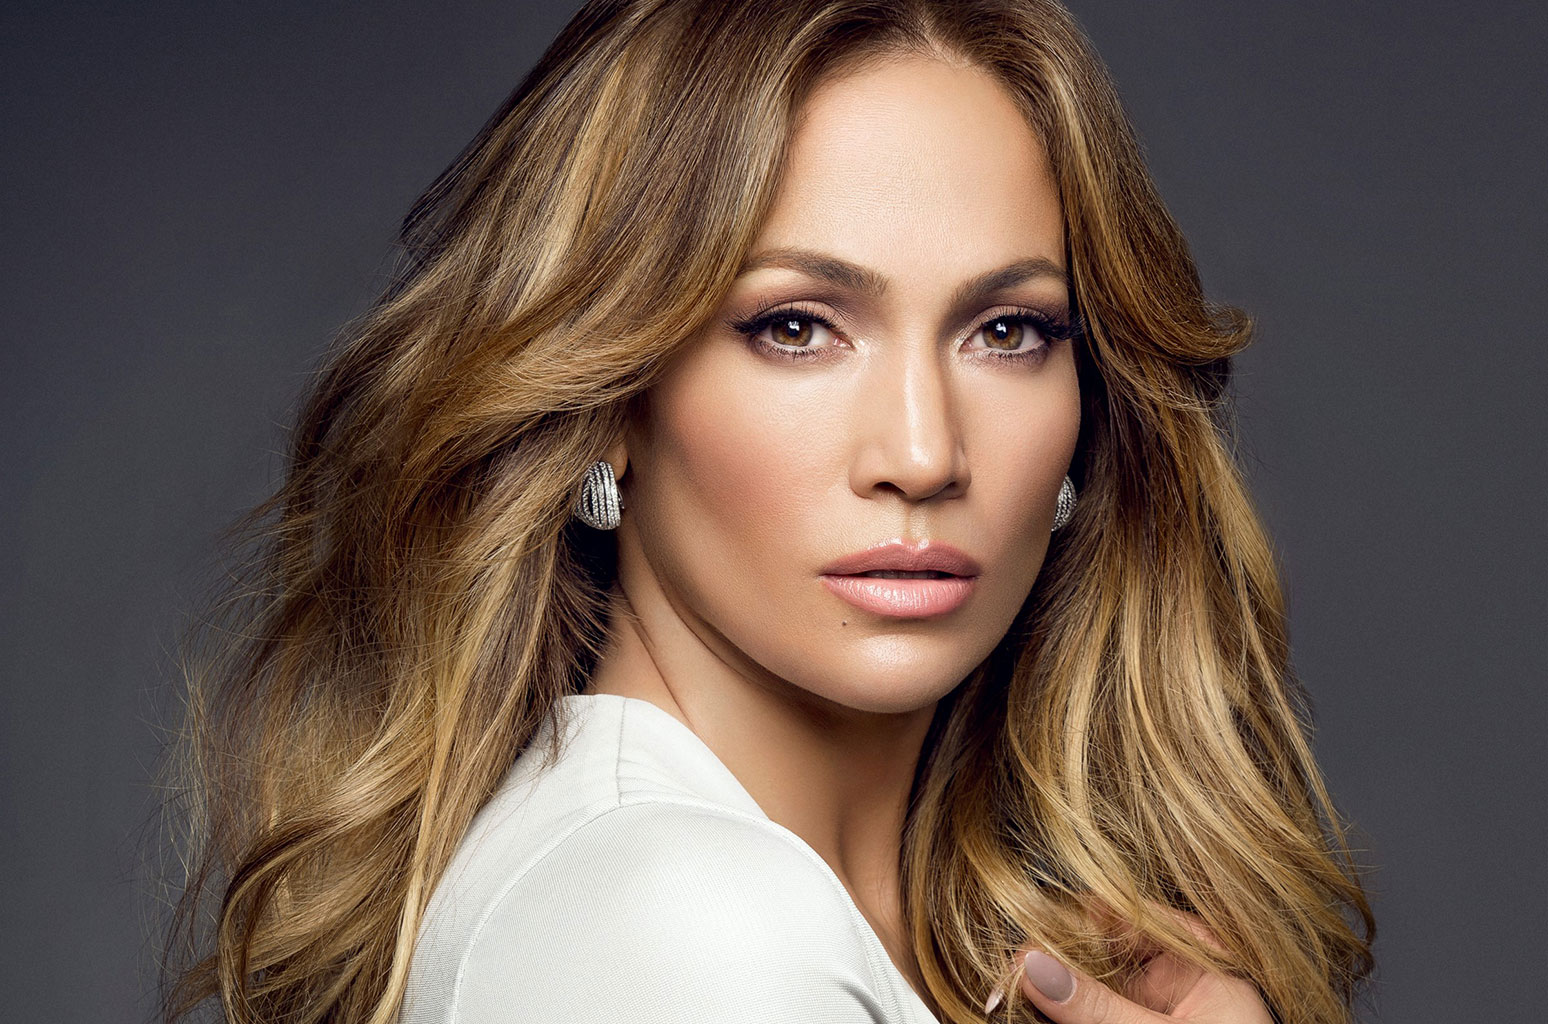 Nigerian Lady Calls Out Jennifer Lopez For Using iPhone X (Picture)